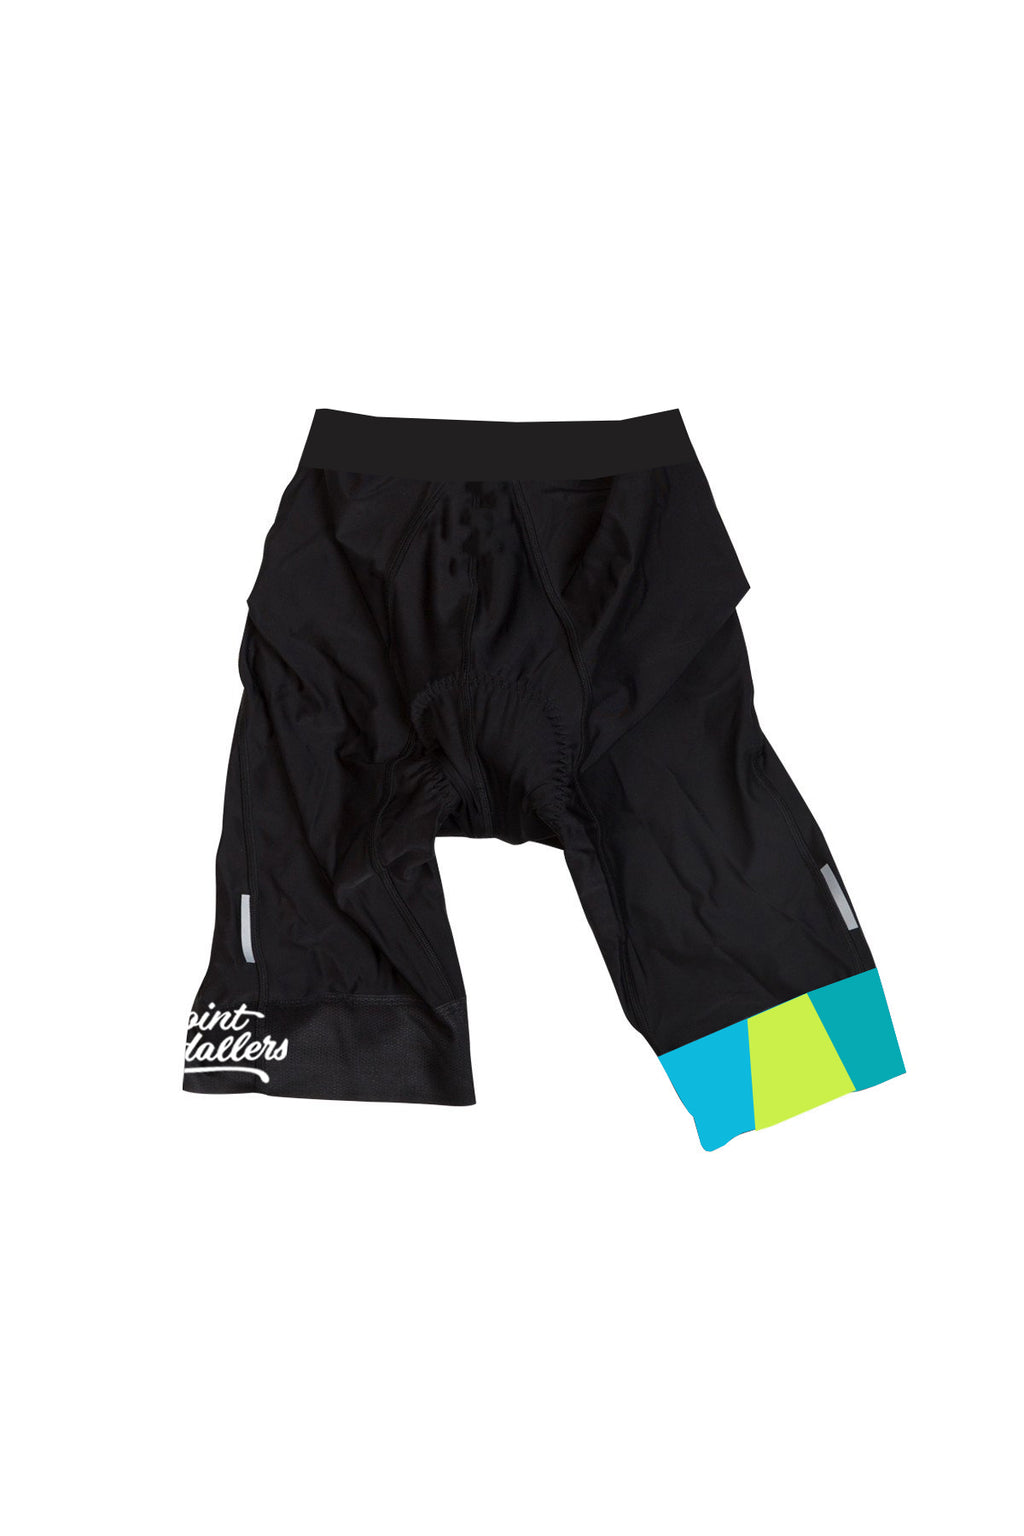 Point Pedallers - Mens Cycling Shorts